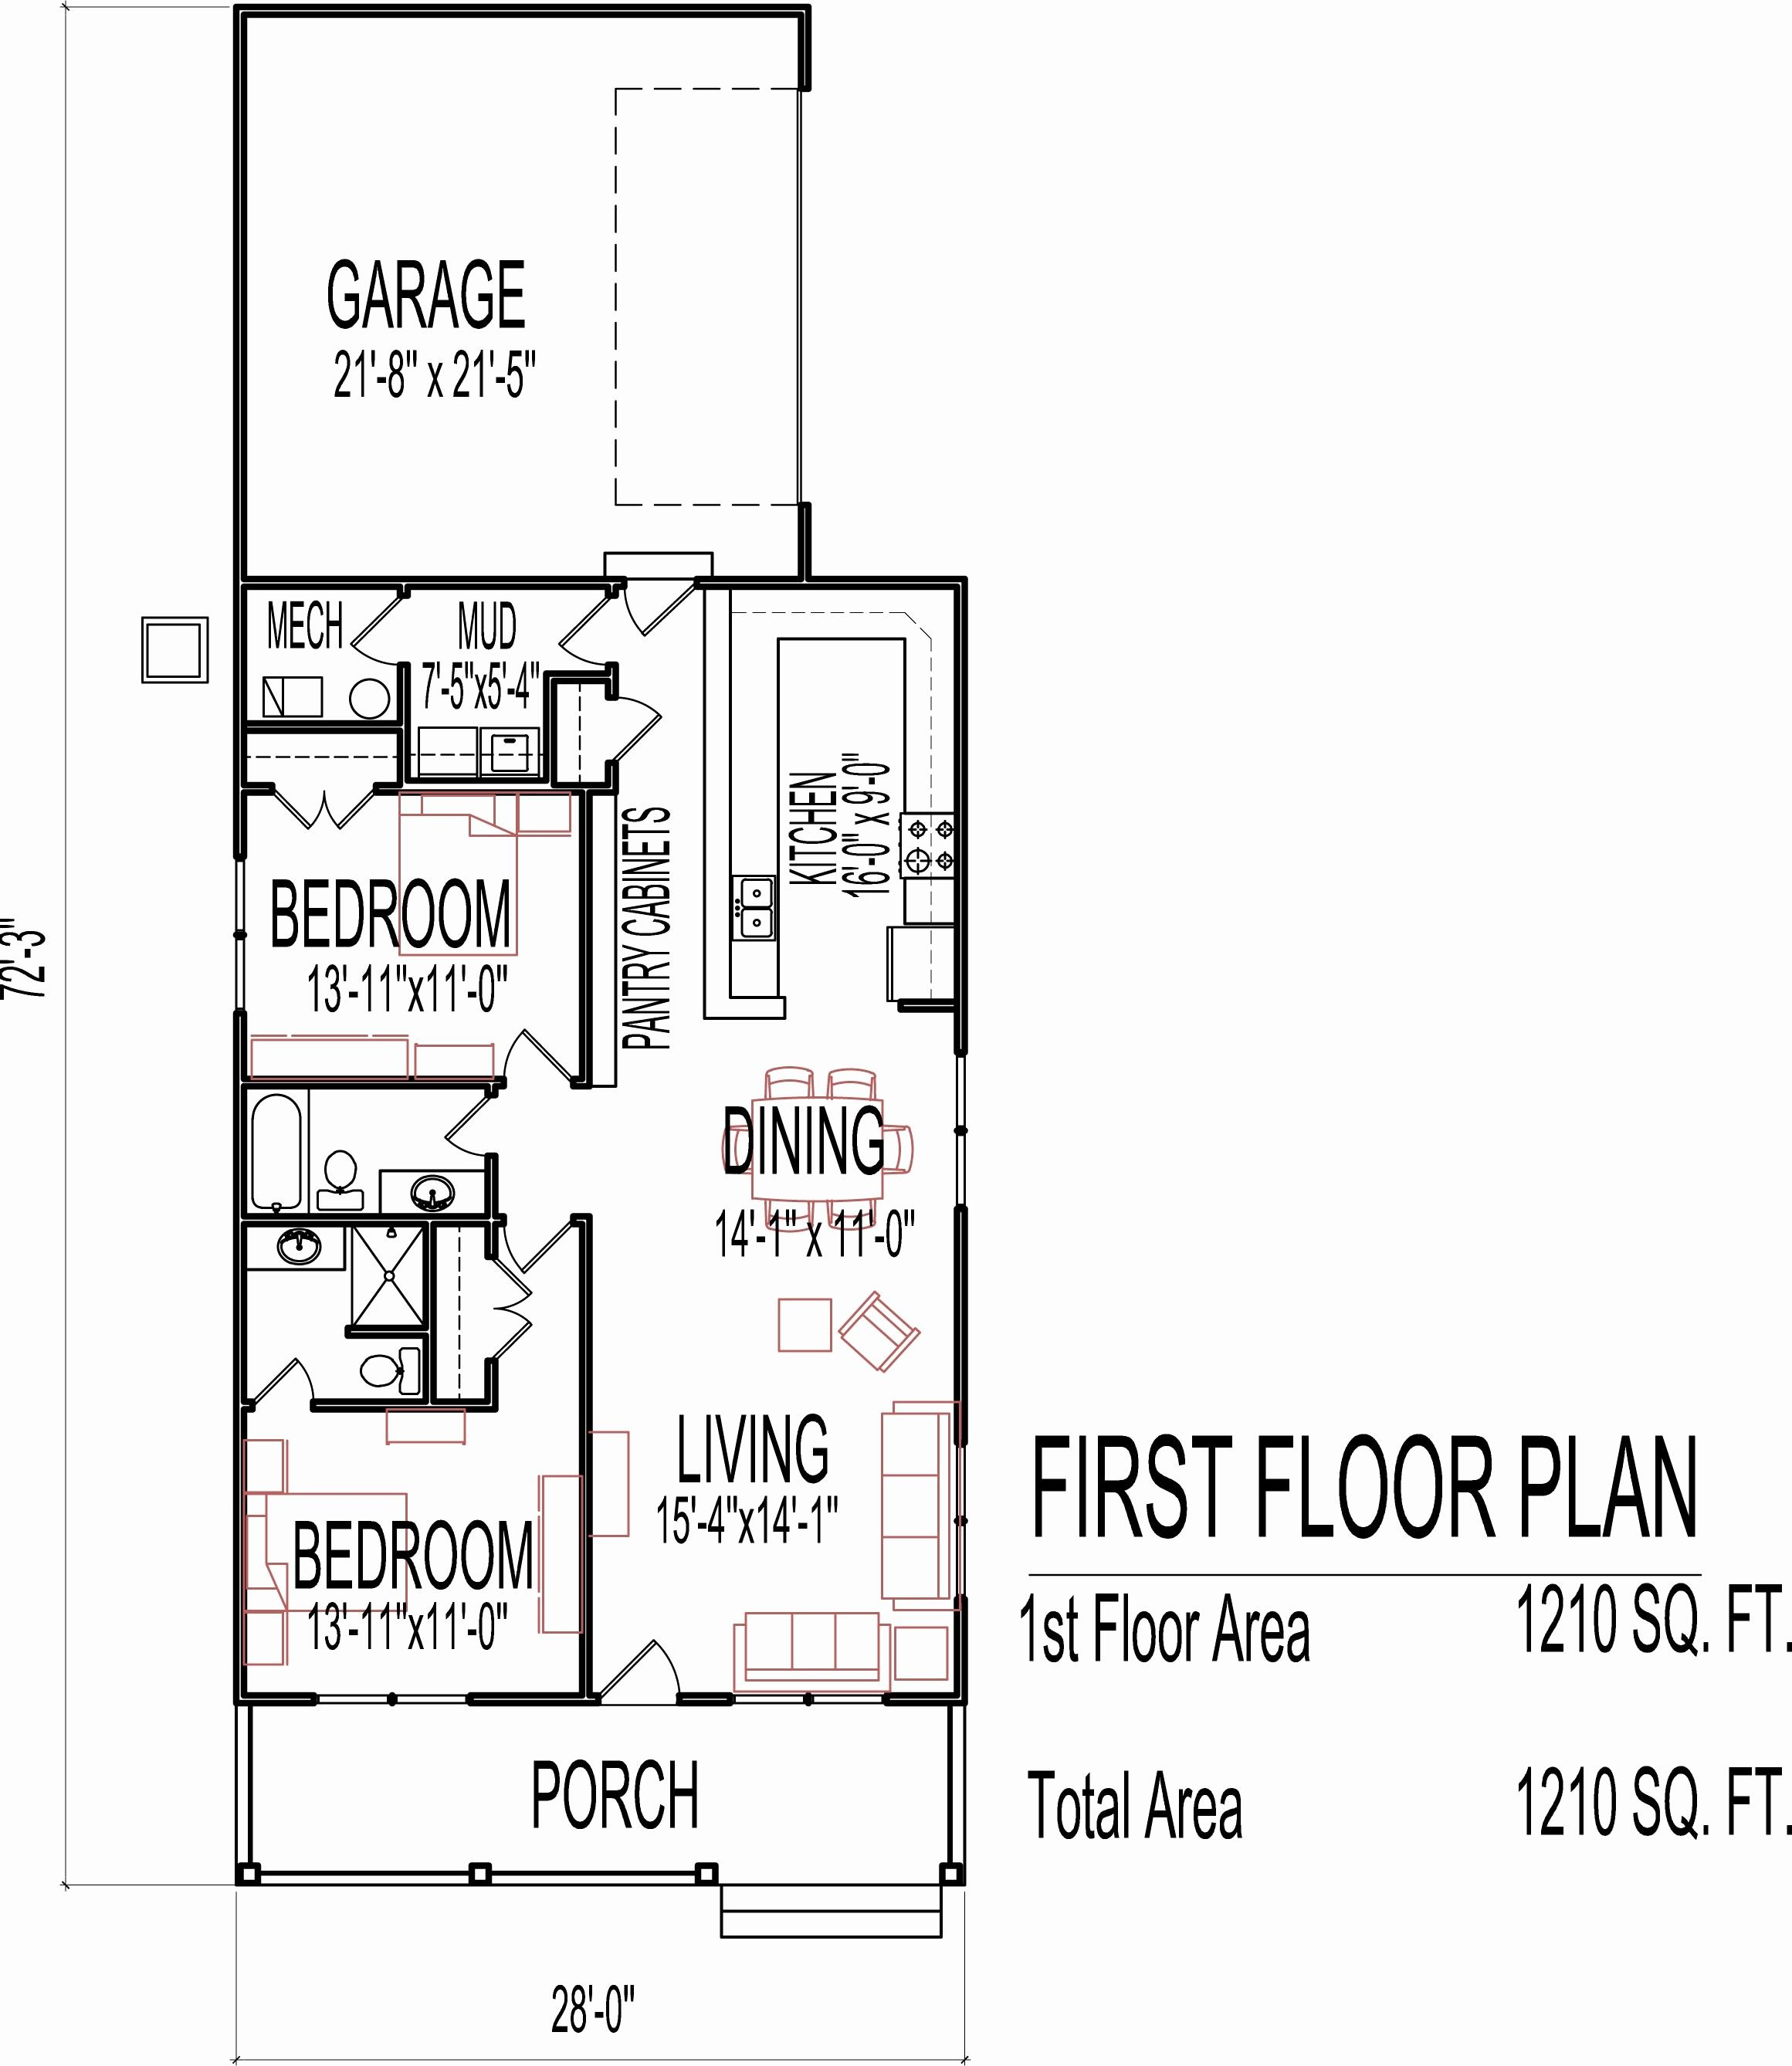 House Plans Indian Style Sq Ft Lovely Plan For Sq Ft Home Floor Plans For Two Bedroom Homes Beauti In 2020 Single Story House Floor Plans Floor Plans Two Bedroom House